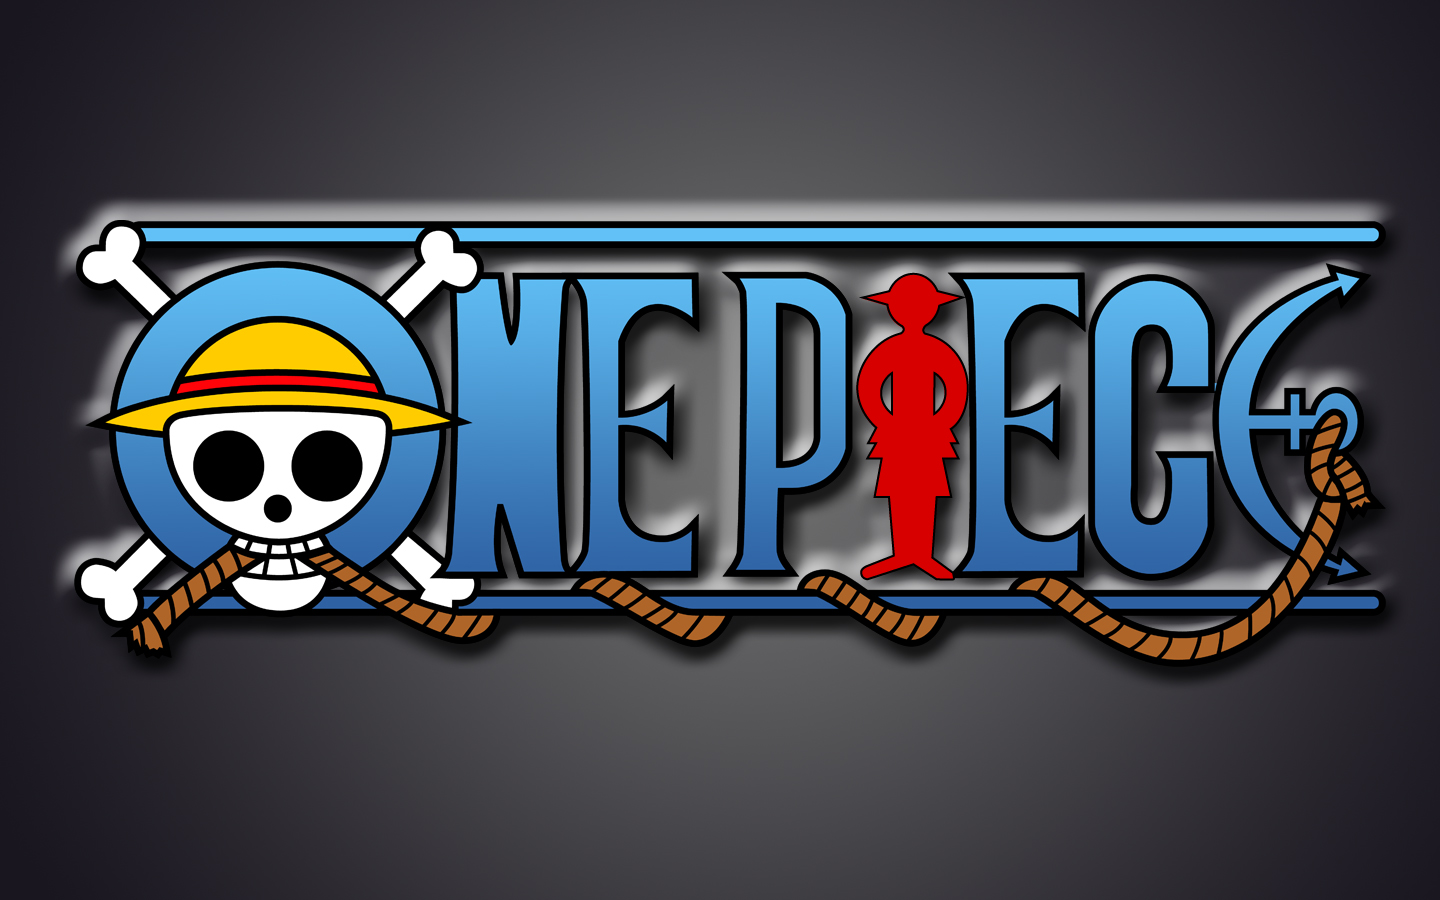 One Piece Luffy Wallpaper d 1440x900